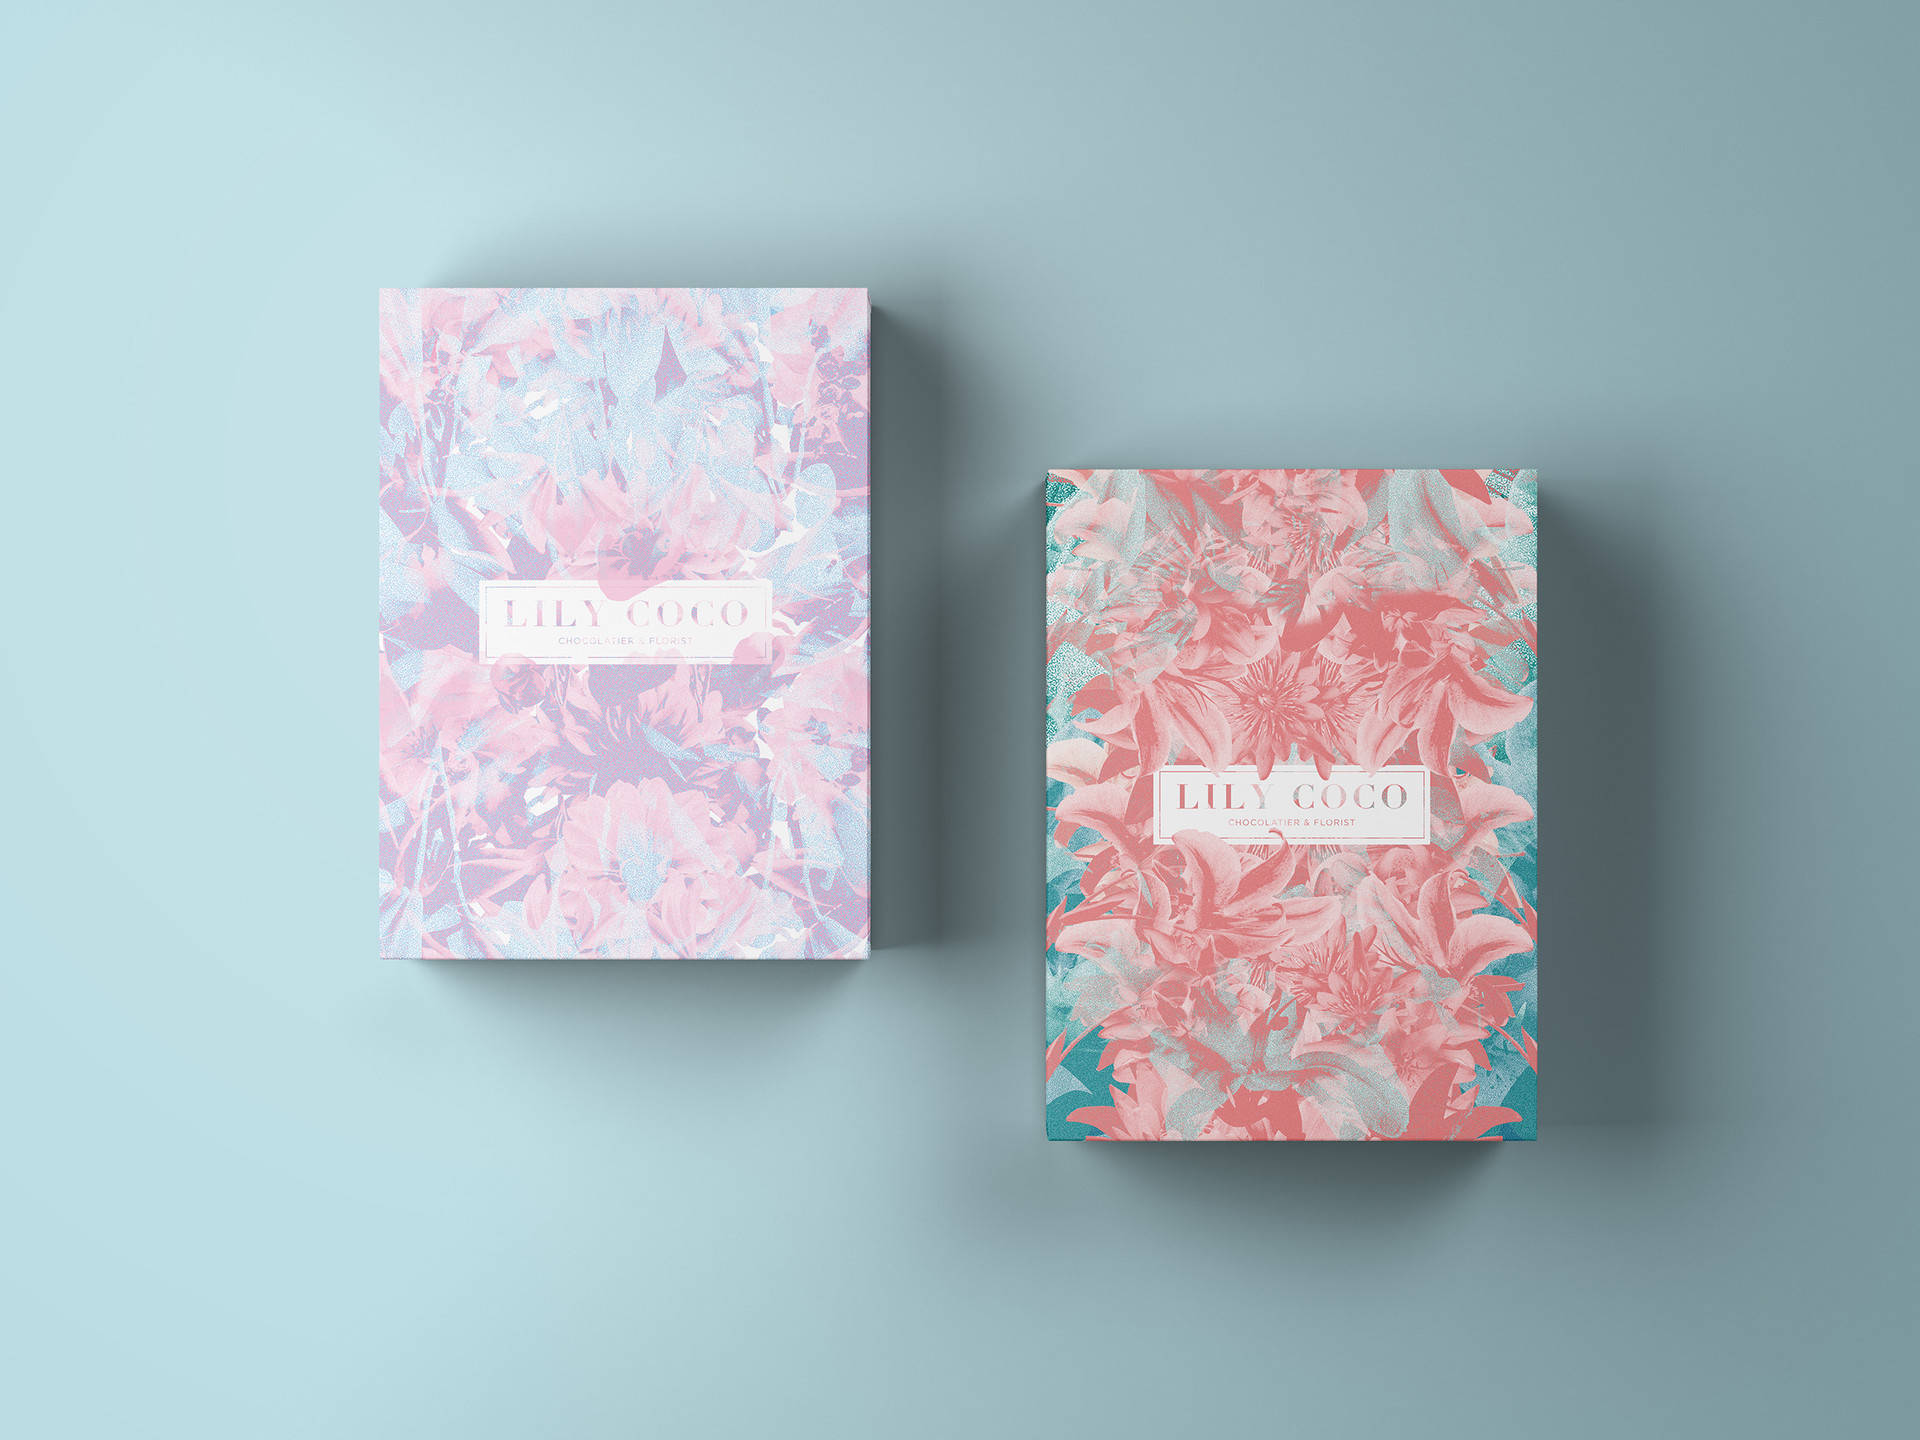 lily Package Box Mockup - Top View.jpg